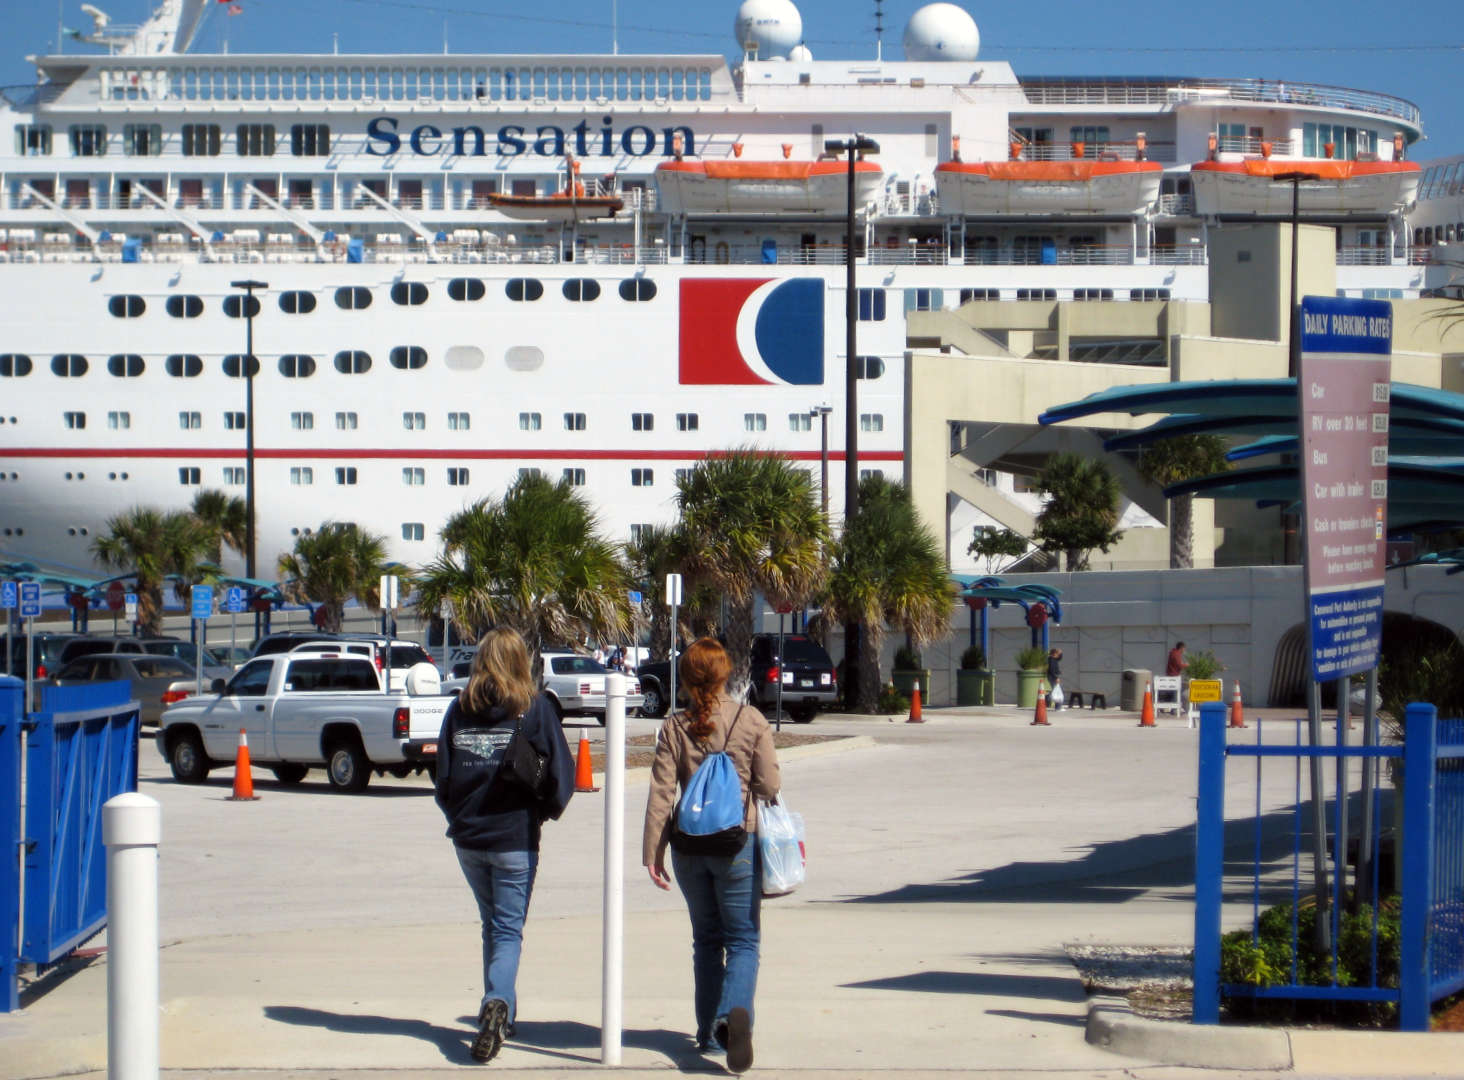 Our big expenditure was a Carnival cruise to the The Bahamas with a friend!